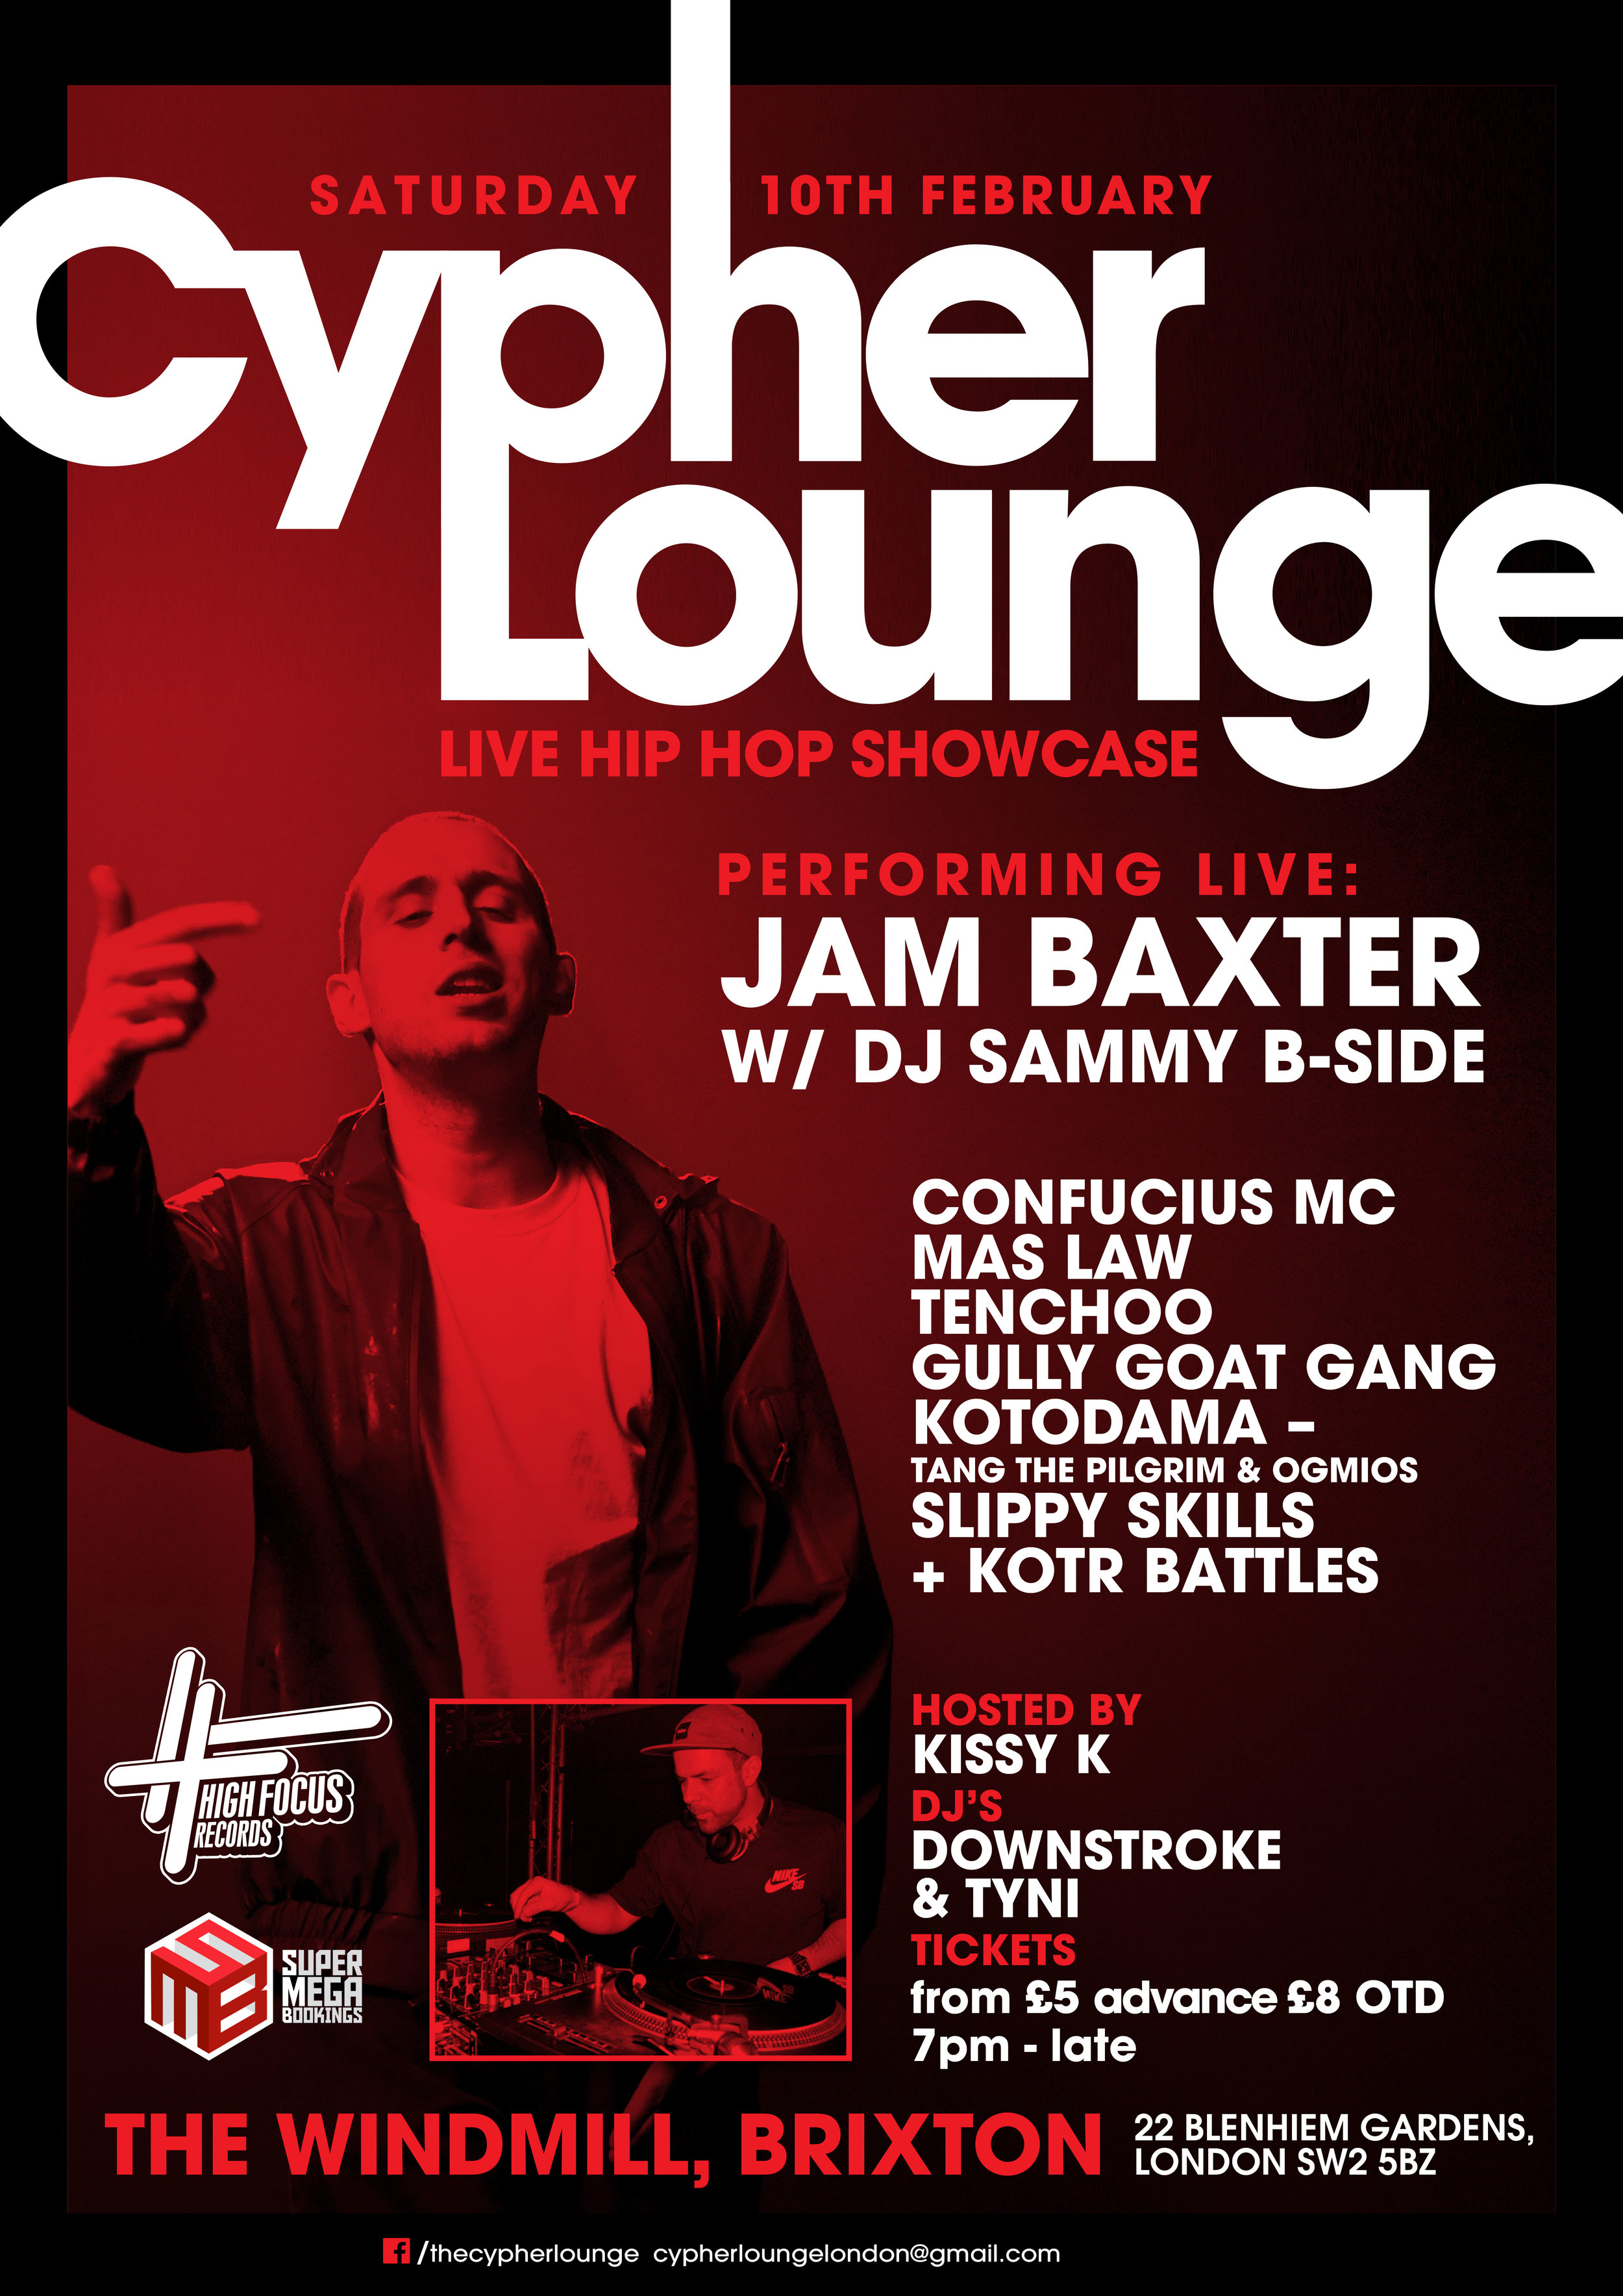 Cypher Lounge